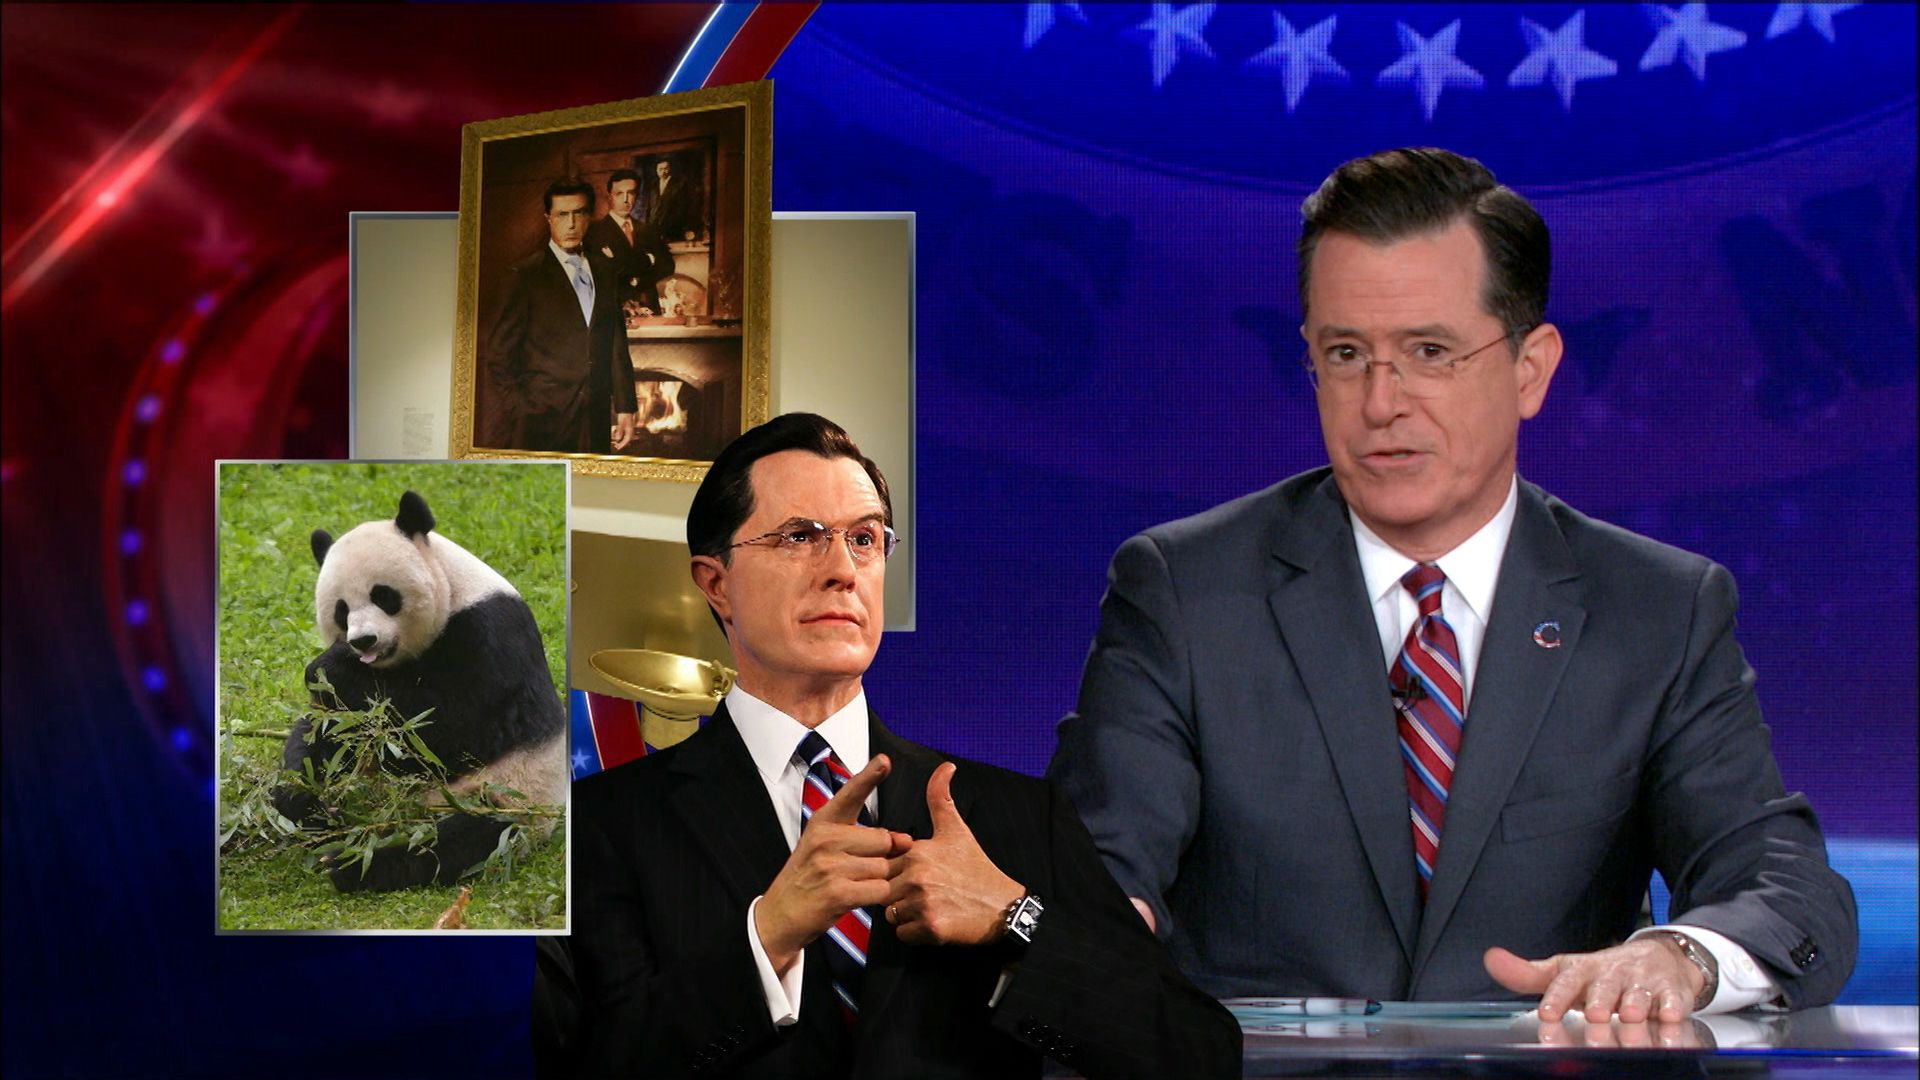 Colbert report episodes with obama